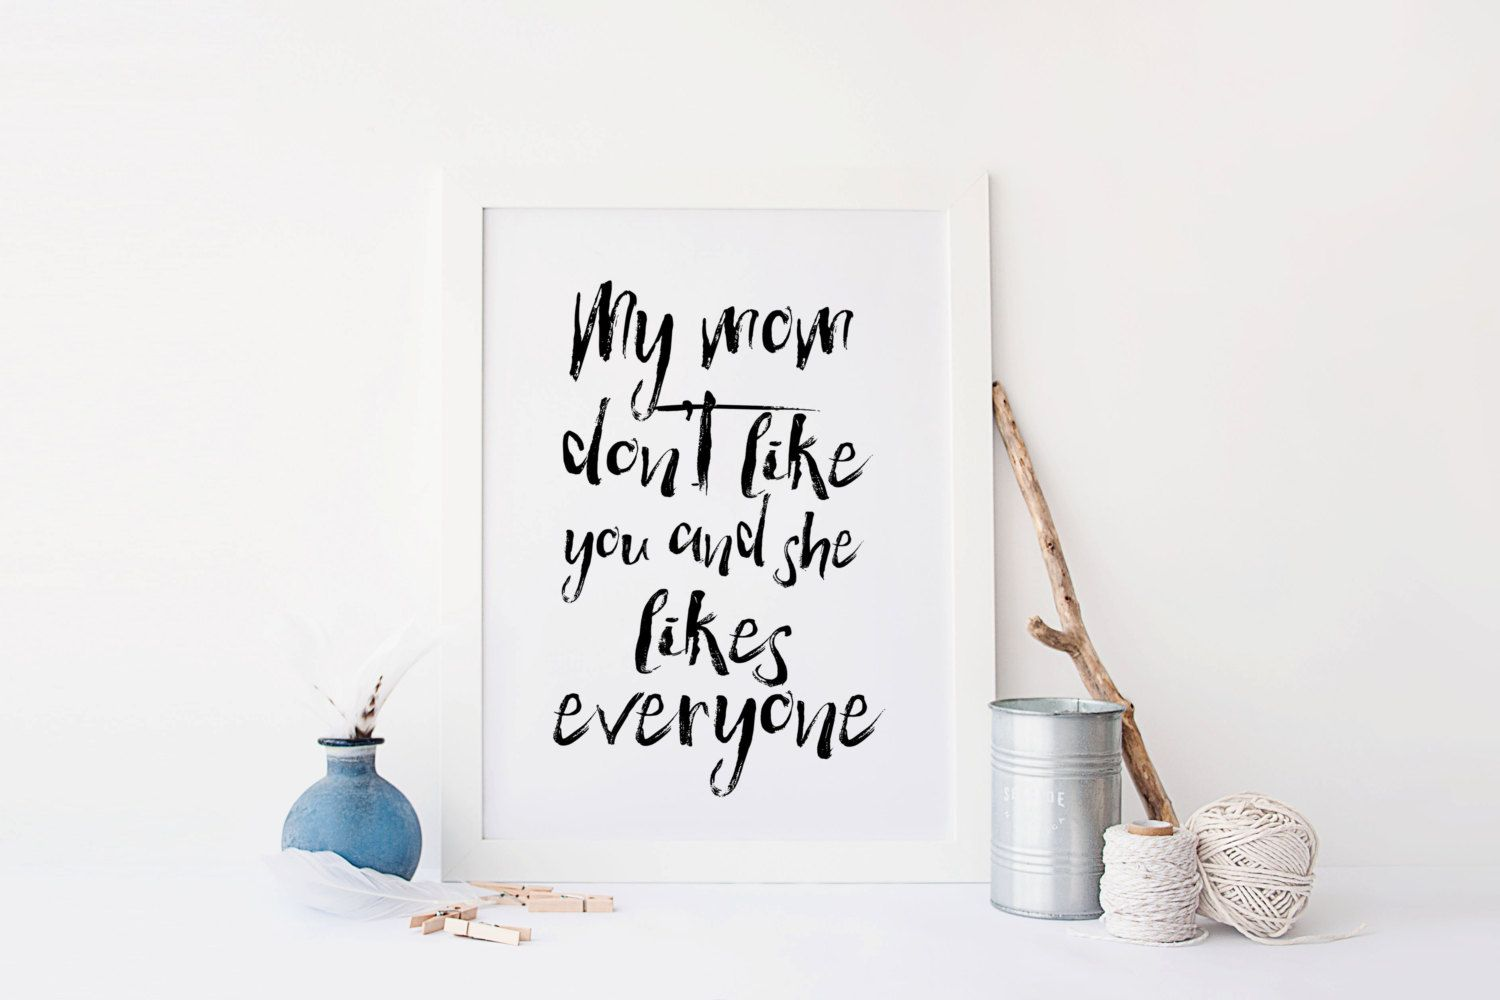 JUSTIN BIEBER PRINT,Justin Bieber Quote,Music,Song Quotes,Justin Bieber Song,Gift For Her,Wall Art,Quotes,Justin Bieber Poster,Song Lyric von sweetandhoneyprints auf Etsy